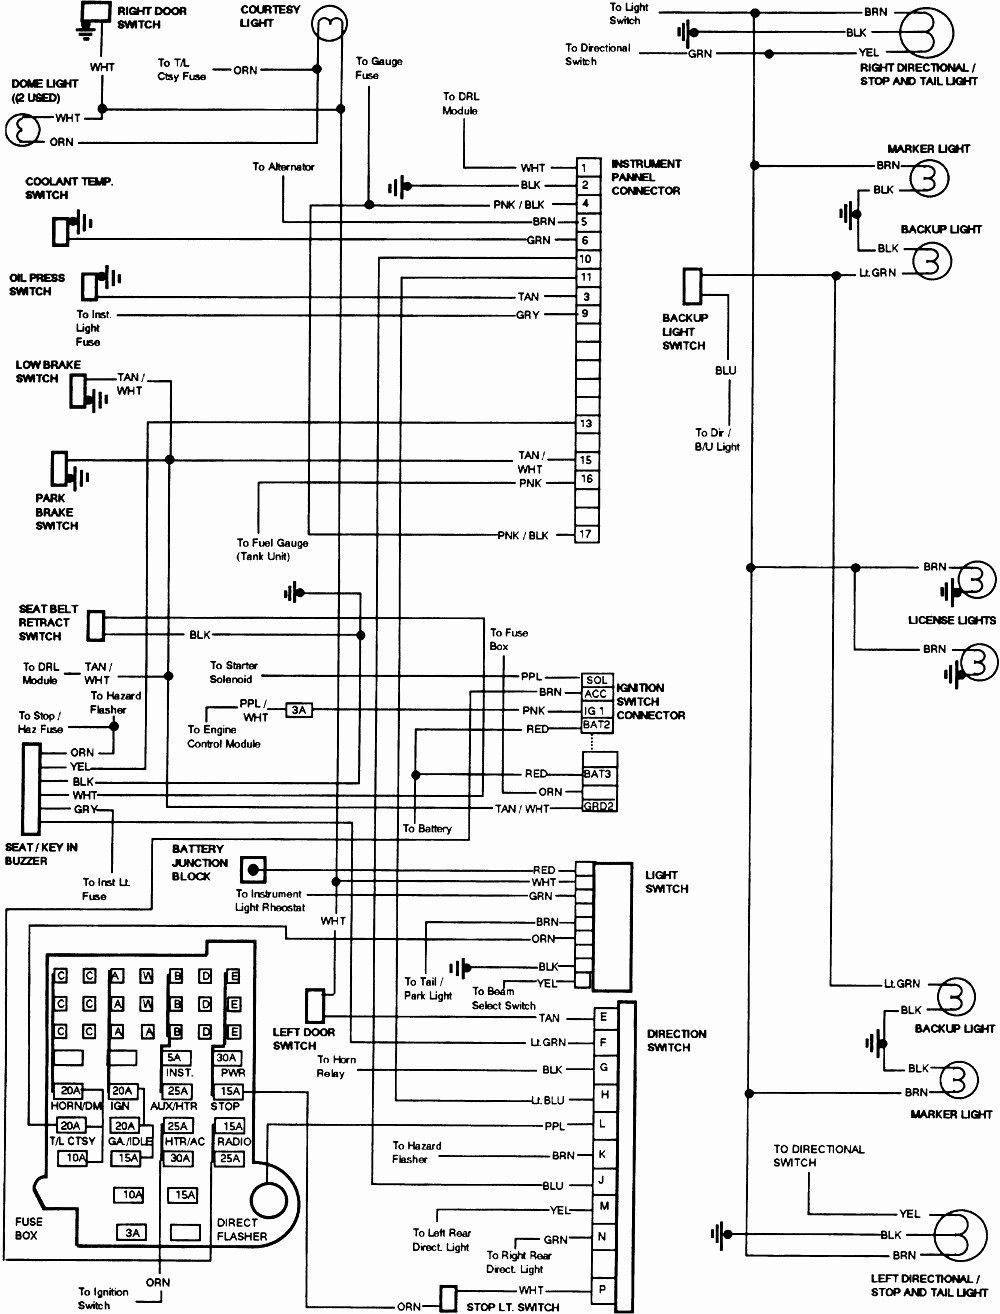 Excellent Ultra Mount Wiring Diagram Wiring Diagram Wiring Cloud Rometaidewilluminateatxorg